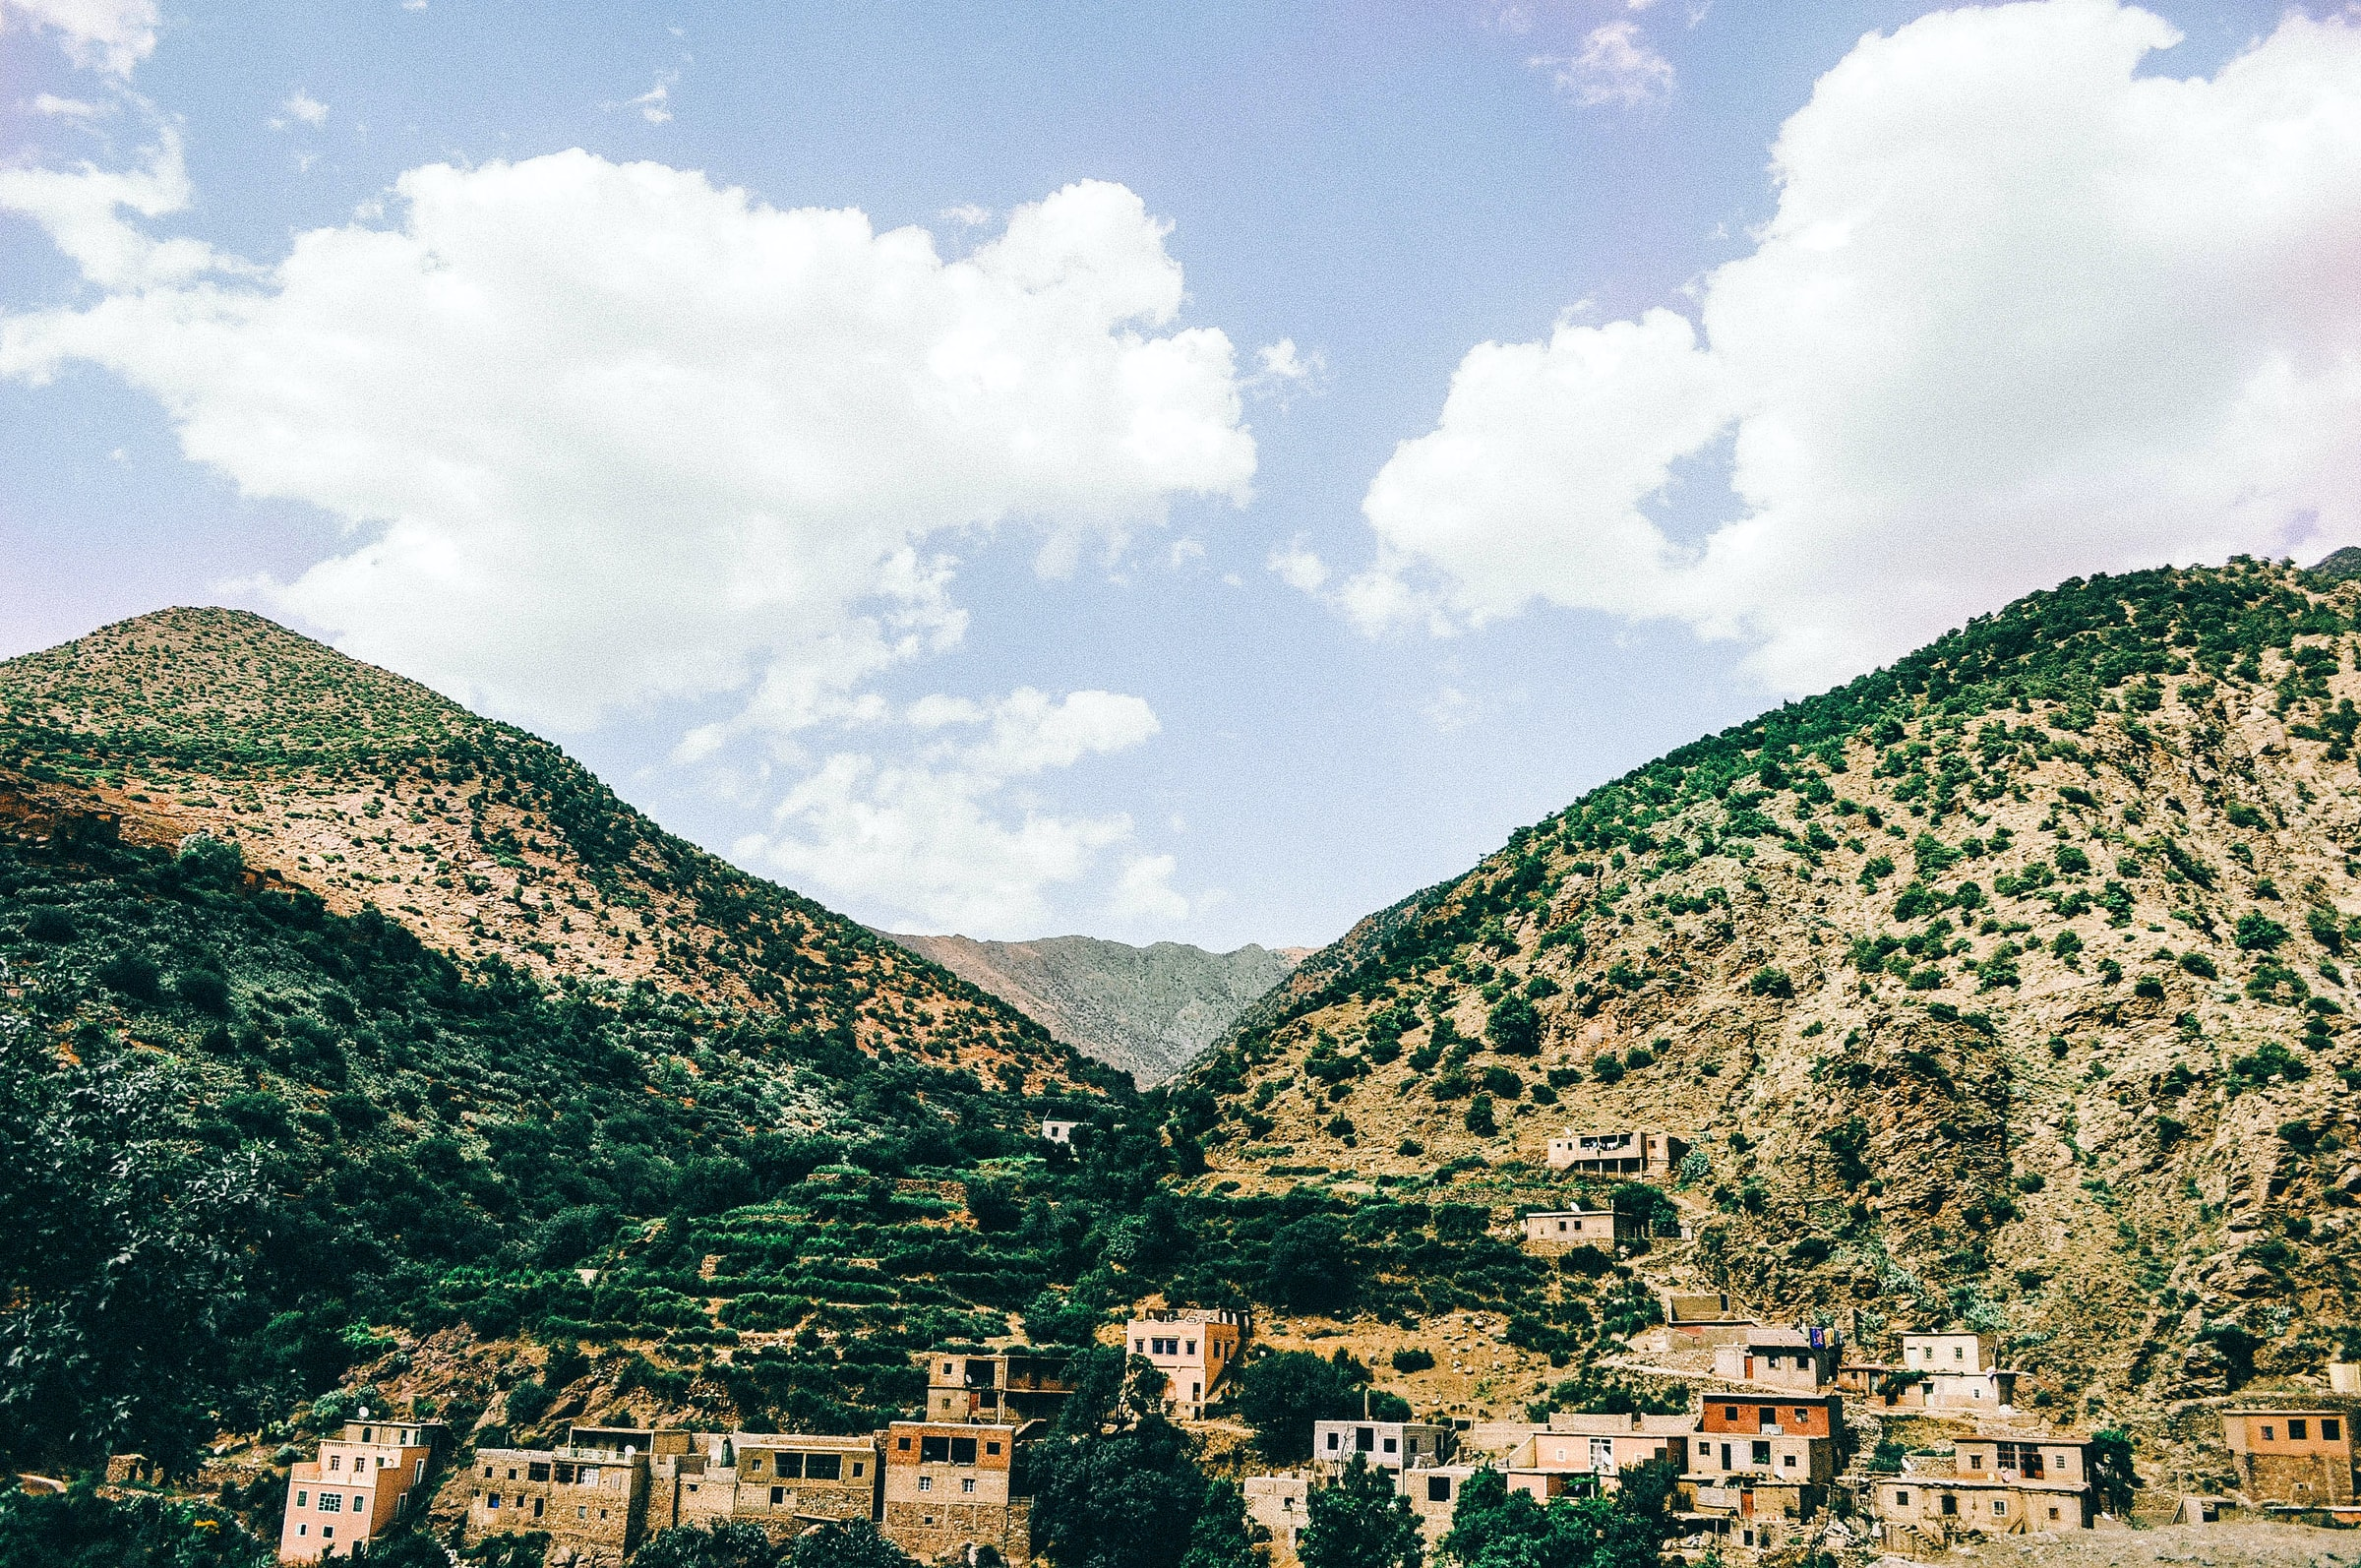 Yemen: a country besieged confronts COVID-19